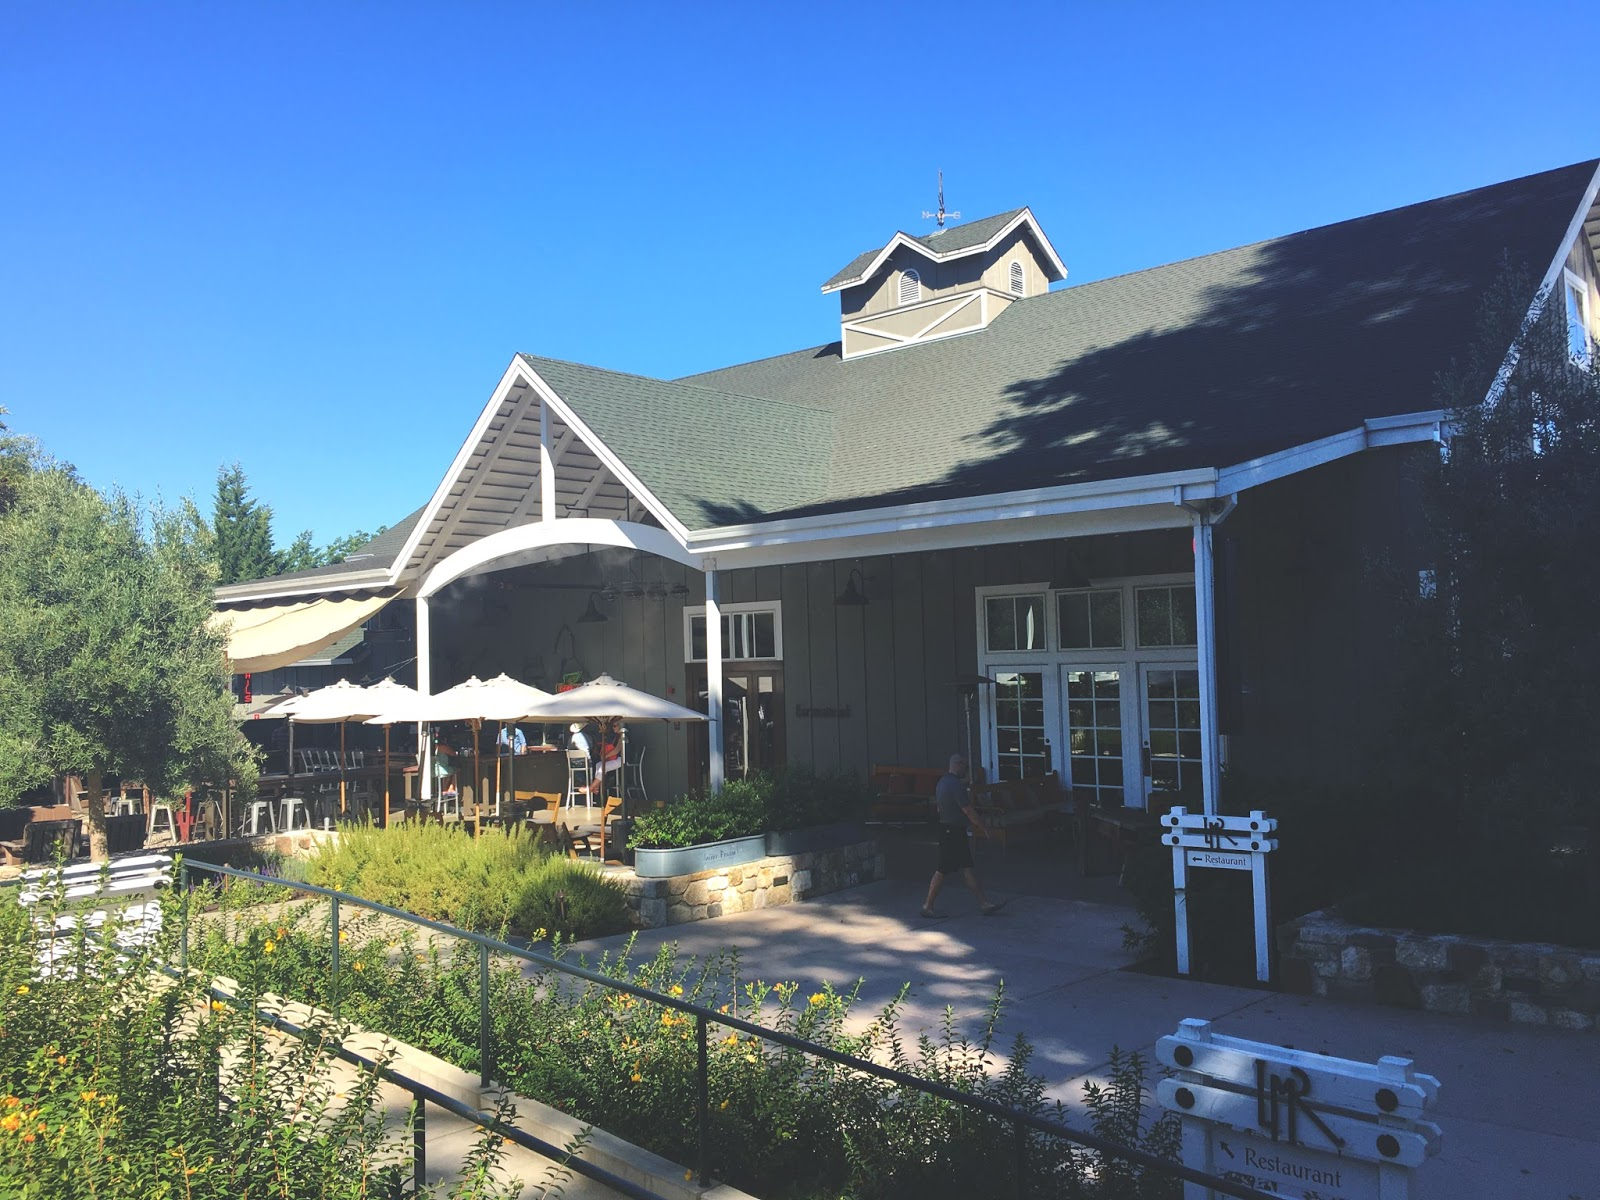 Farmstead Restaurant at Long Meadow Ranch in Napa, California